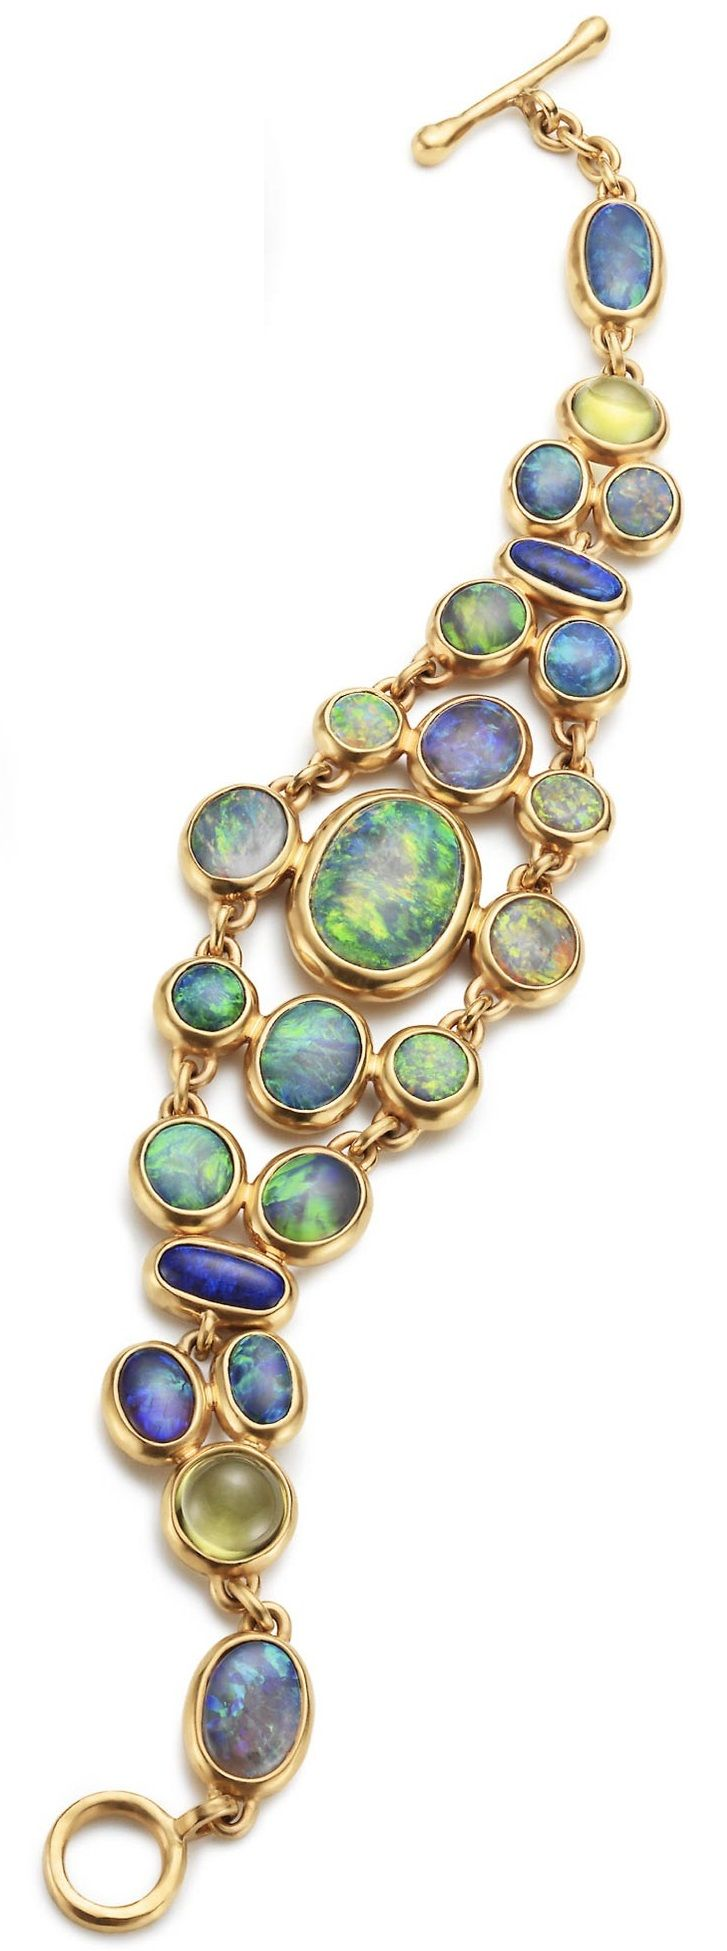 Louis Comfort Tiffany For Tiffany Co An Arts And Crafts Opal Bracelet 1900s Jewelry Opal Jewelry Beautiful Jewelry